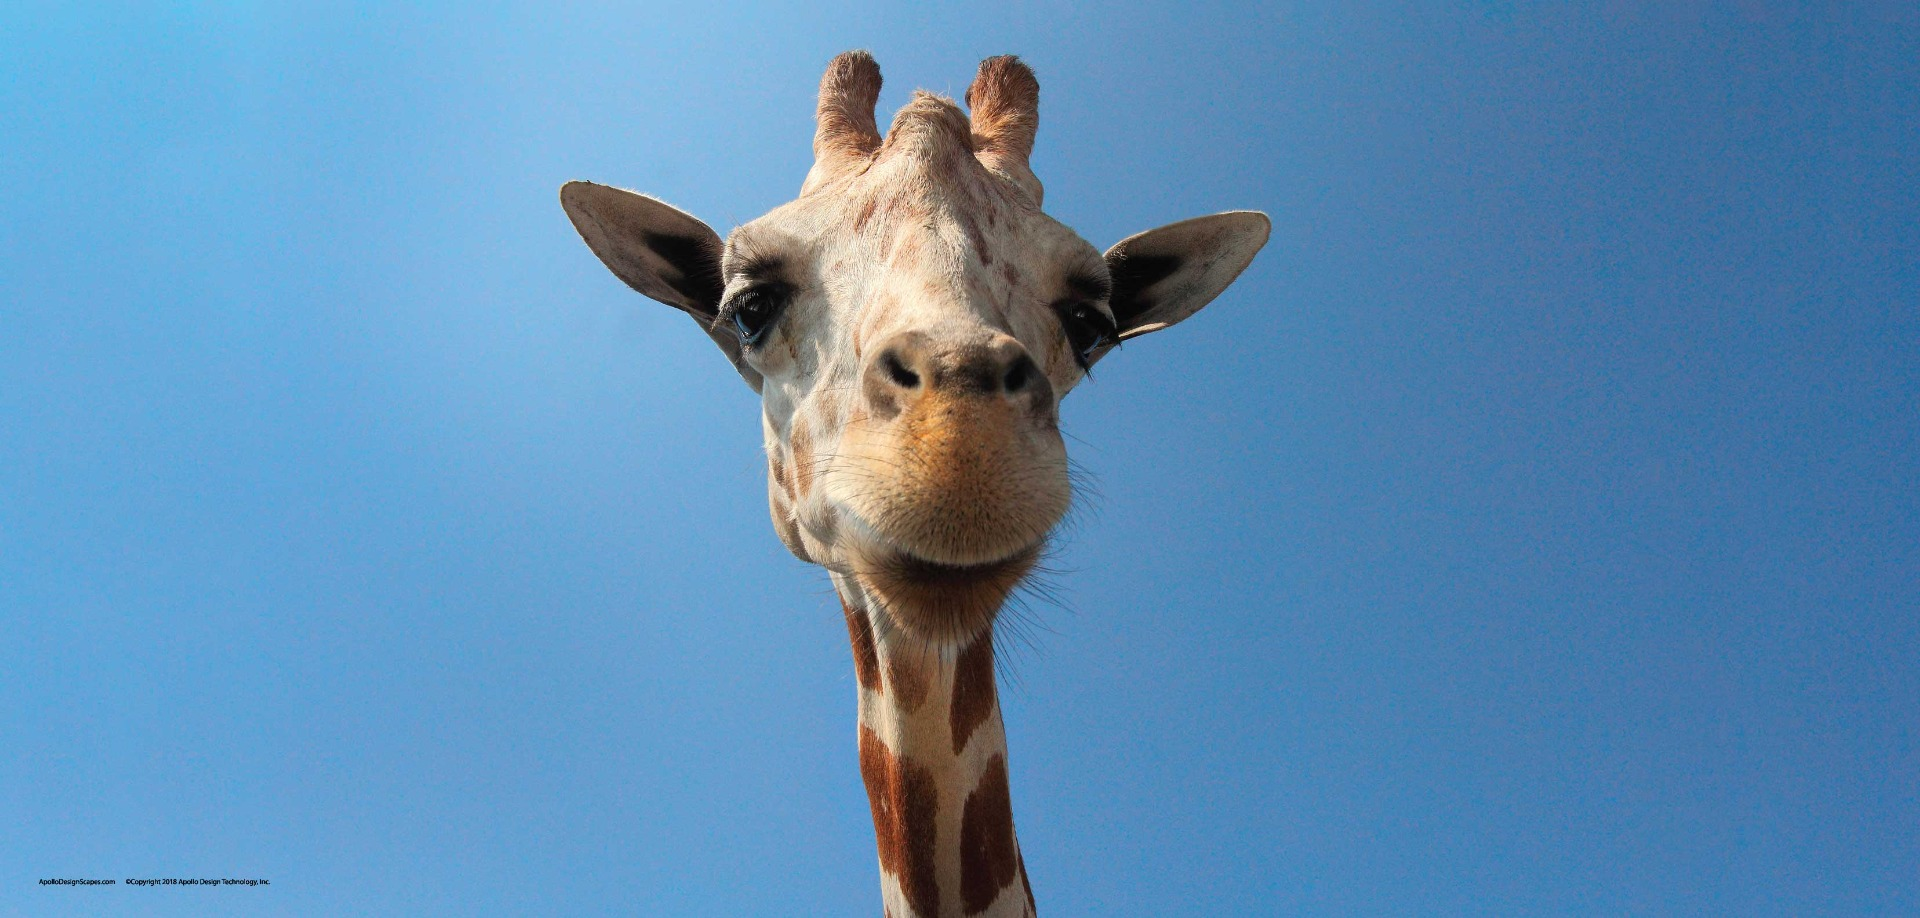 A Portrait of a Giraffe